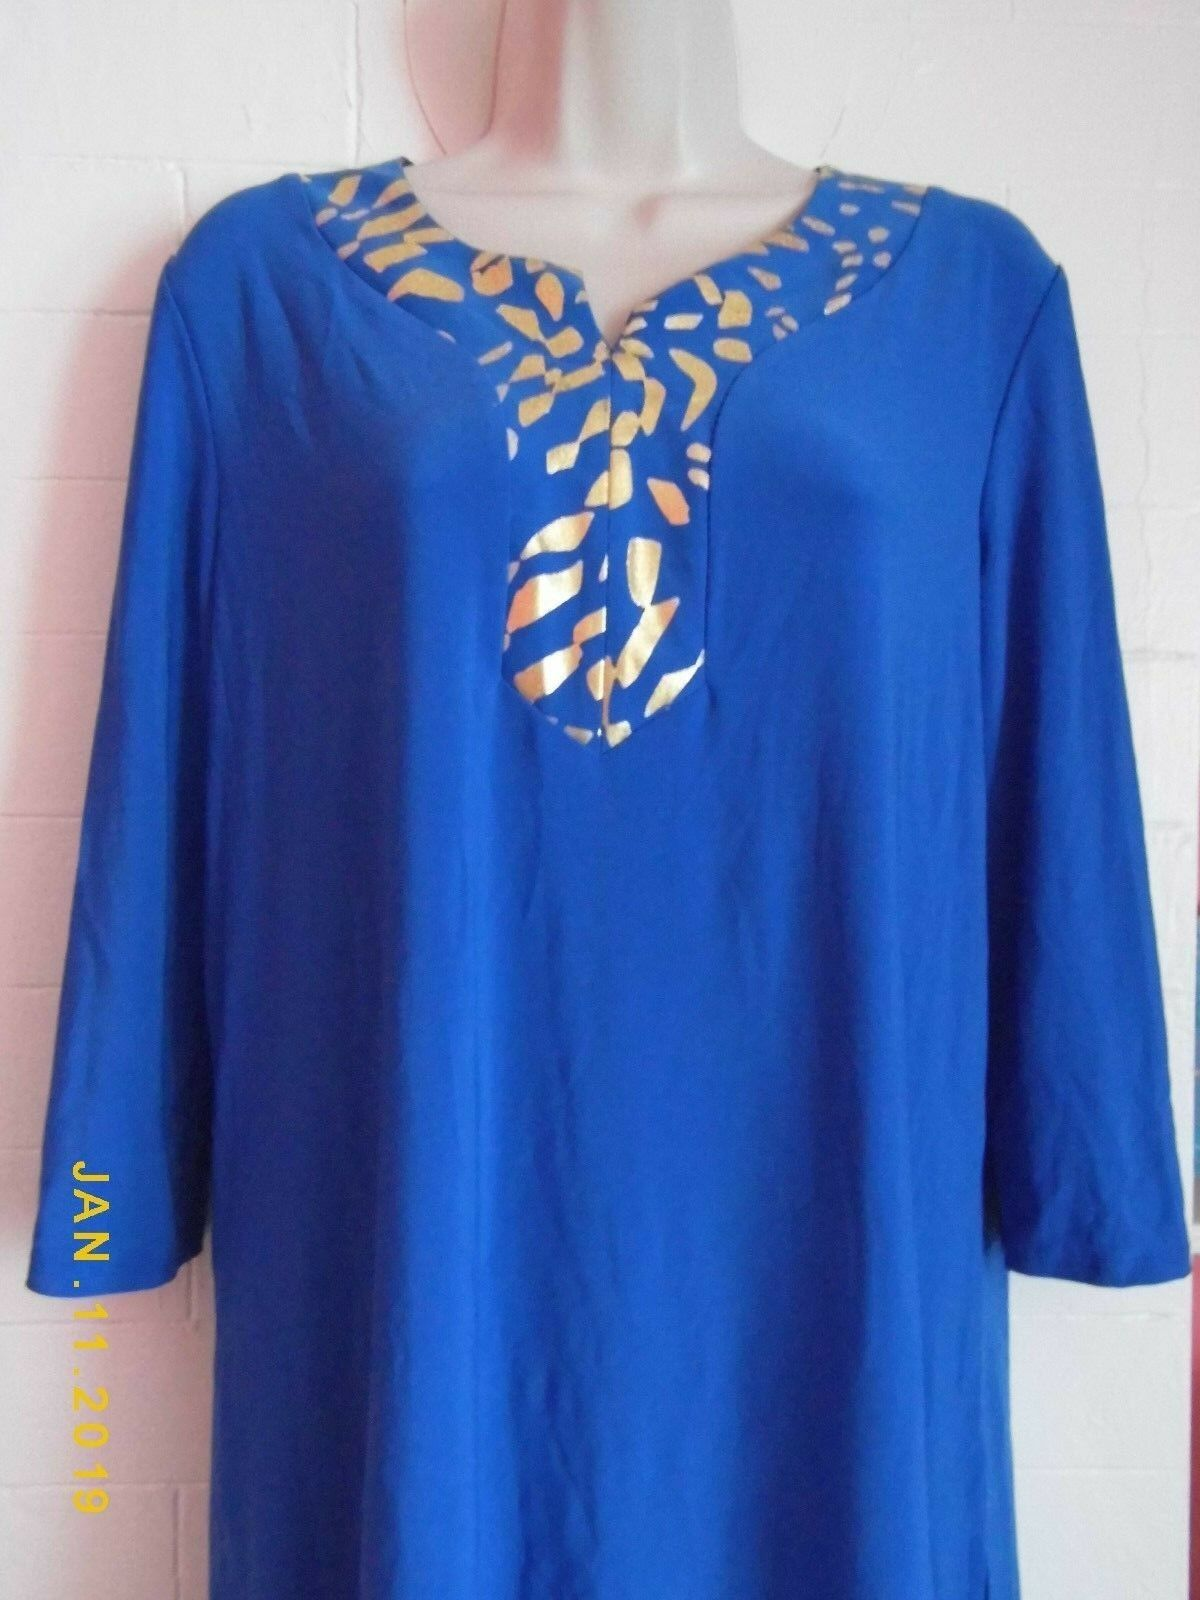 SCS STUDIO ROYAL blueE AND gold PANT AND TUNIC TOP SET, SIZE LARGE, NWT